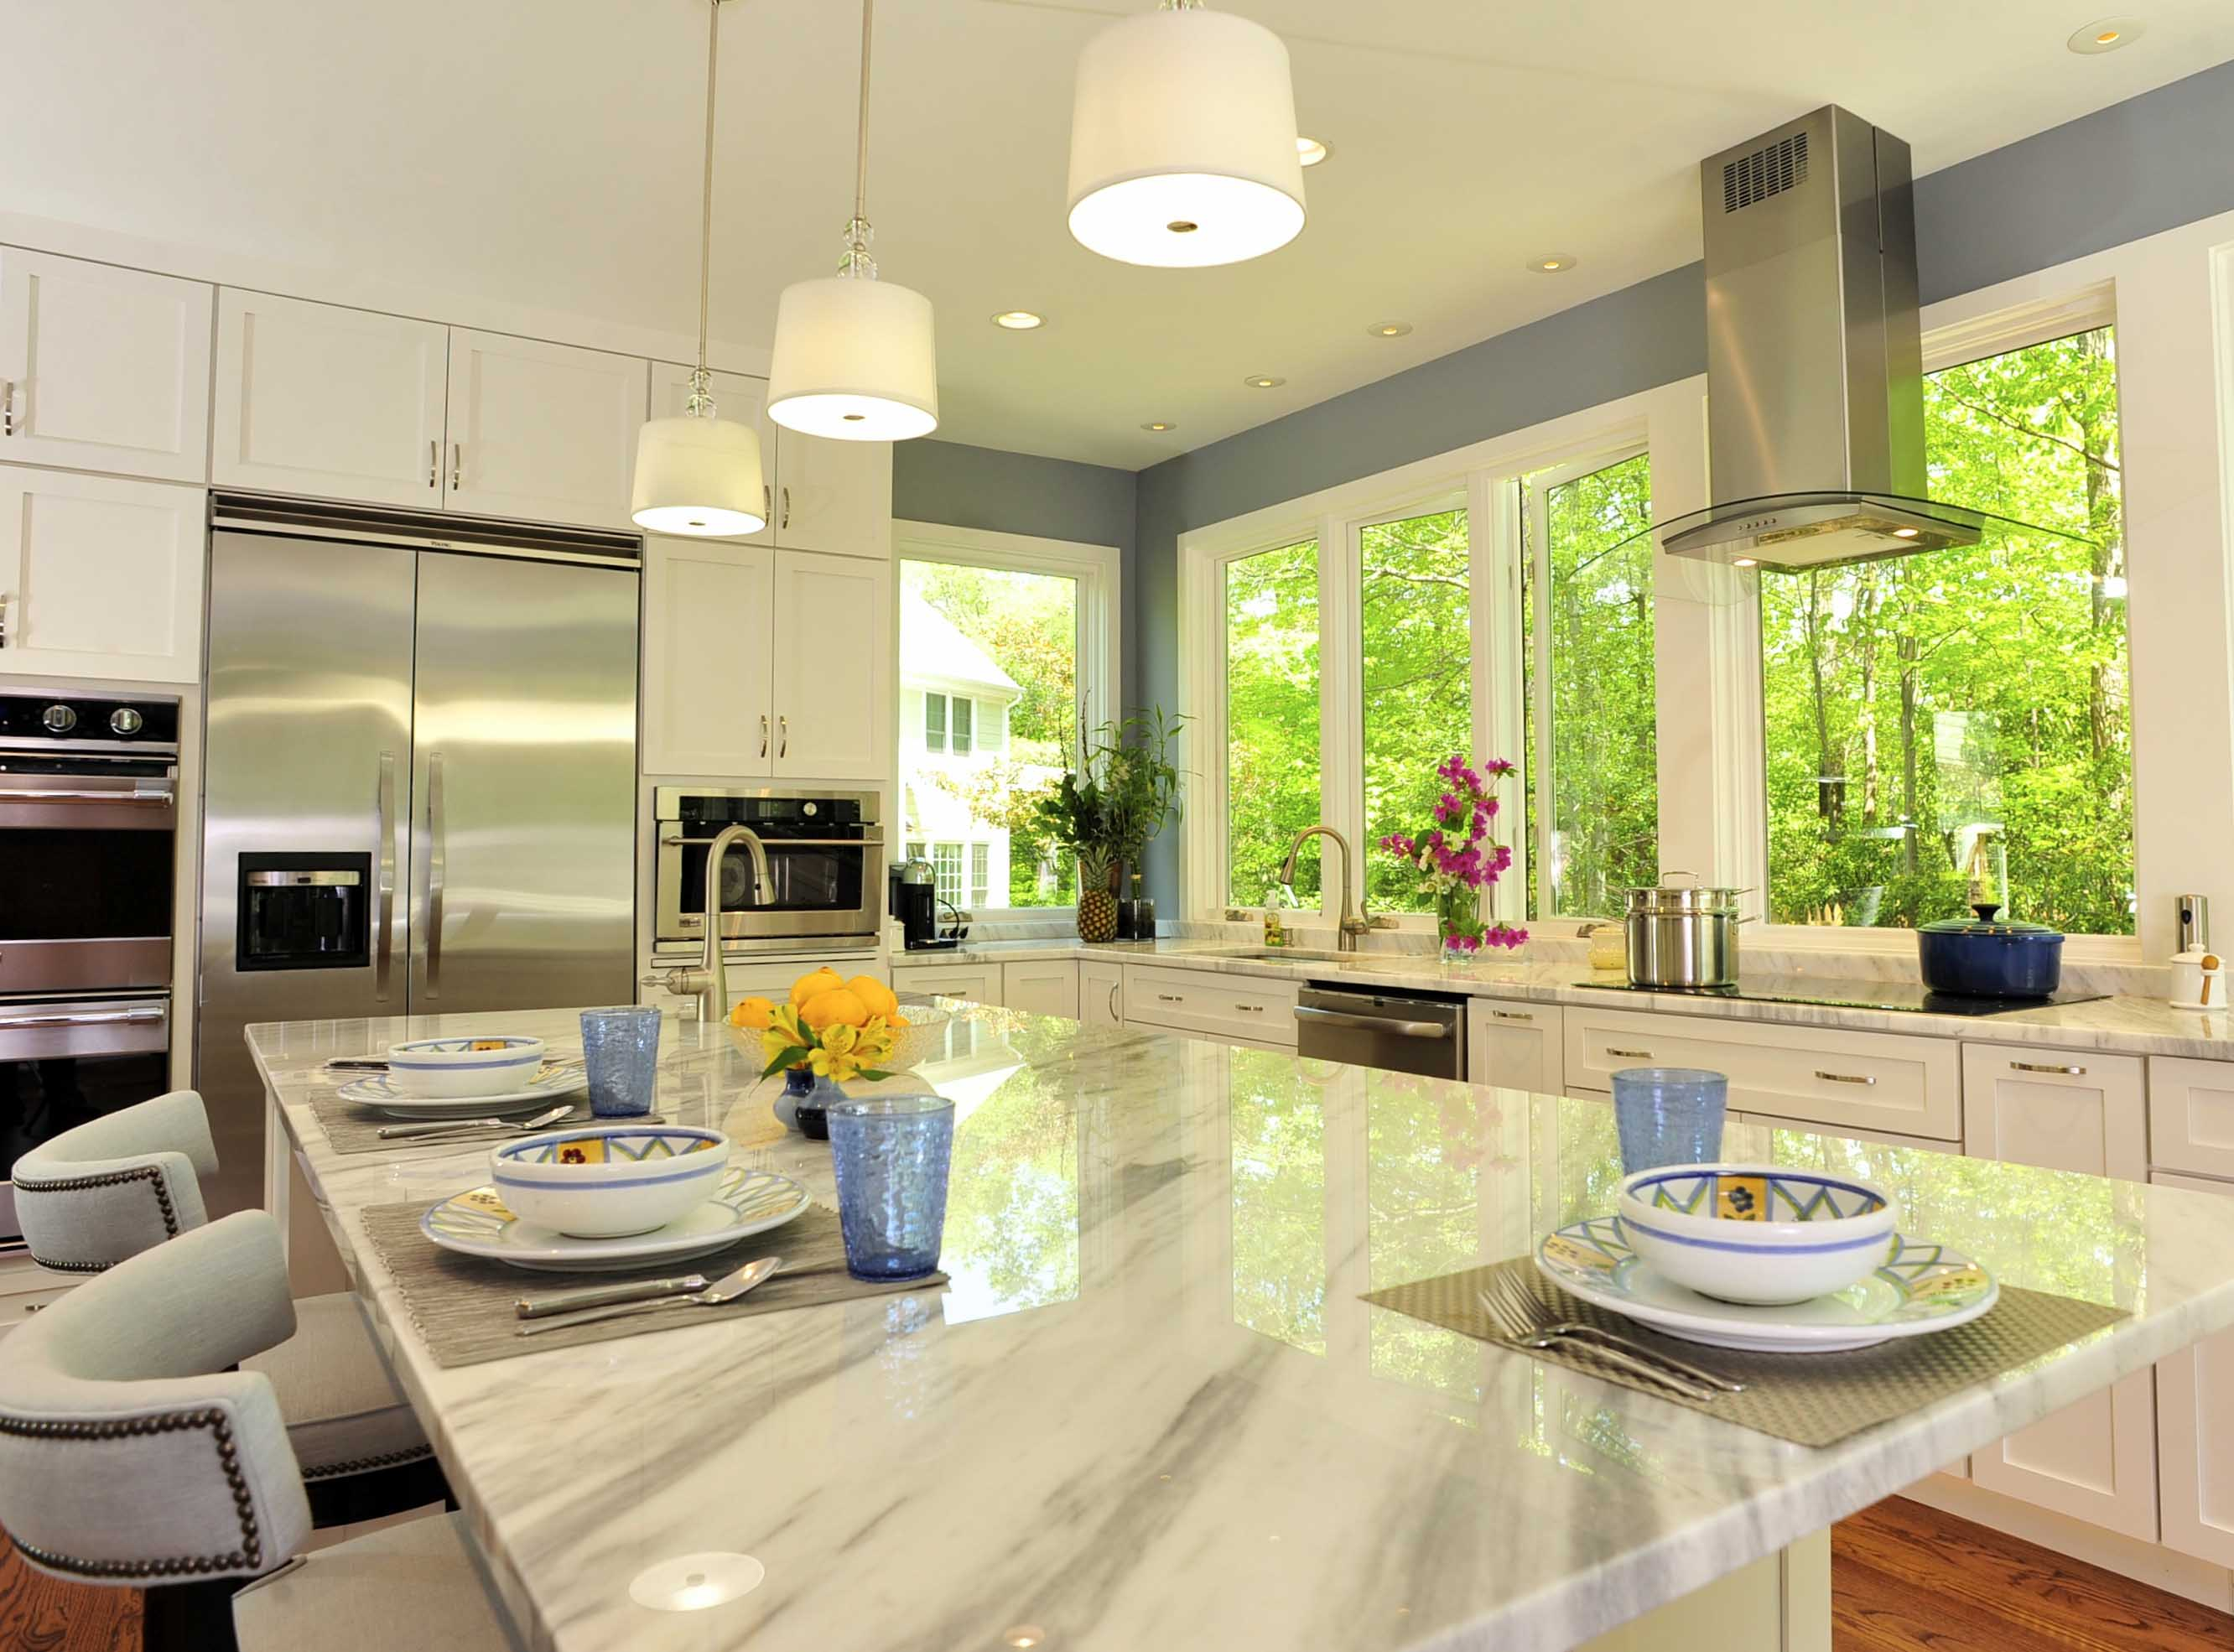 A 'residential' debate … is white the best choice for your kitchen remodel?